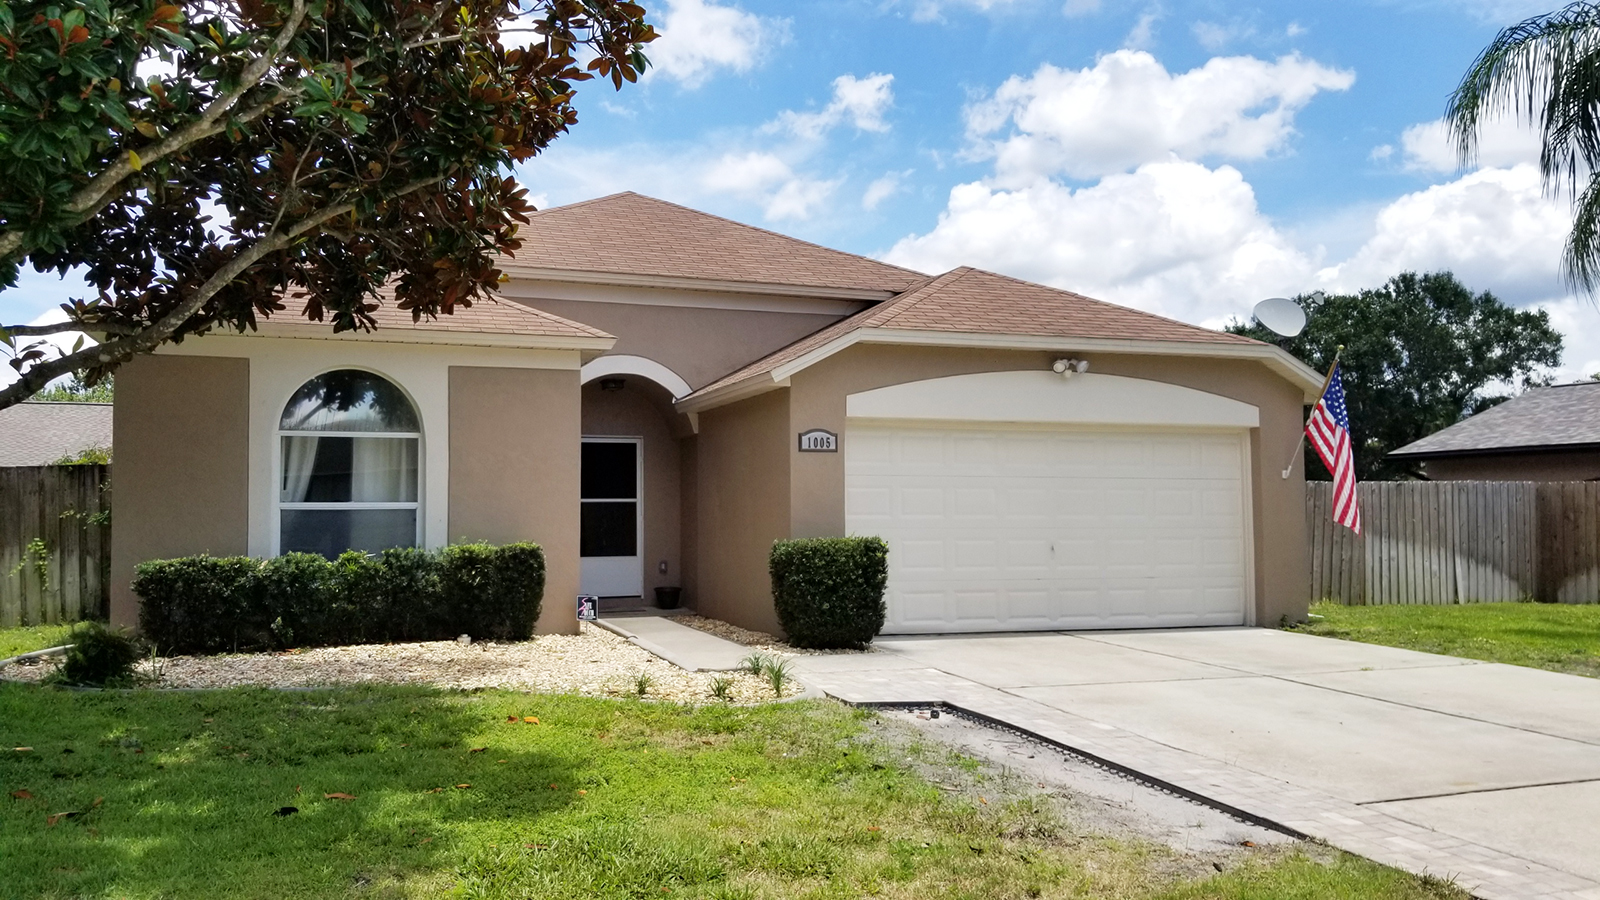 Live a lifestyle of comfort, convenience and community in the highly desirable Alafaya Woods! Situated on a serene cul-de-sac and zoned for sought-after SEMINOLE COUNTY SCHOOLS. This updated home showcases an OPEN FLOOR PLAN, LARGE PRIVATE BACKYARD, NEW INTERIOR & EXTERIOR PAINT, and much more!